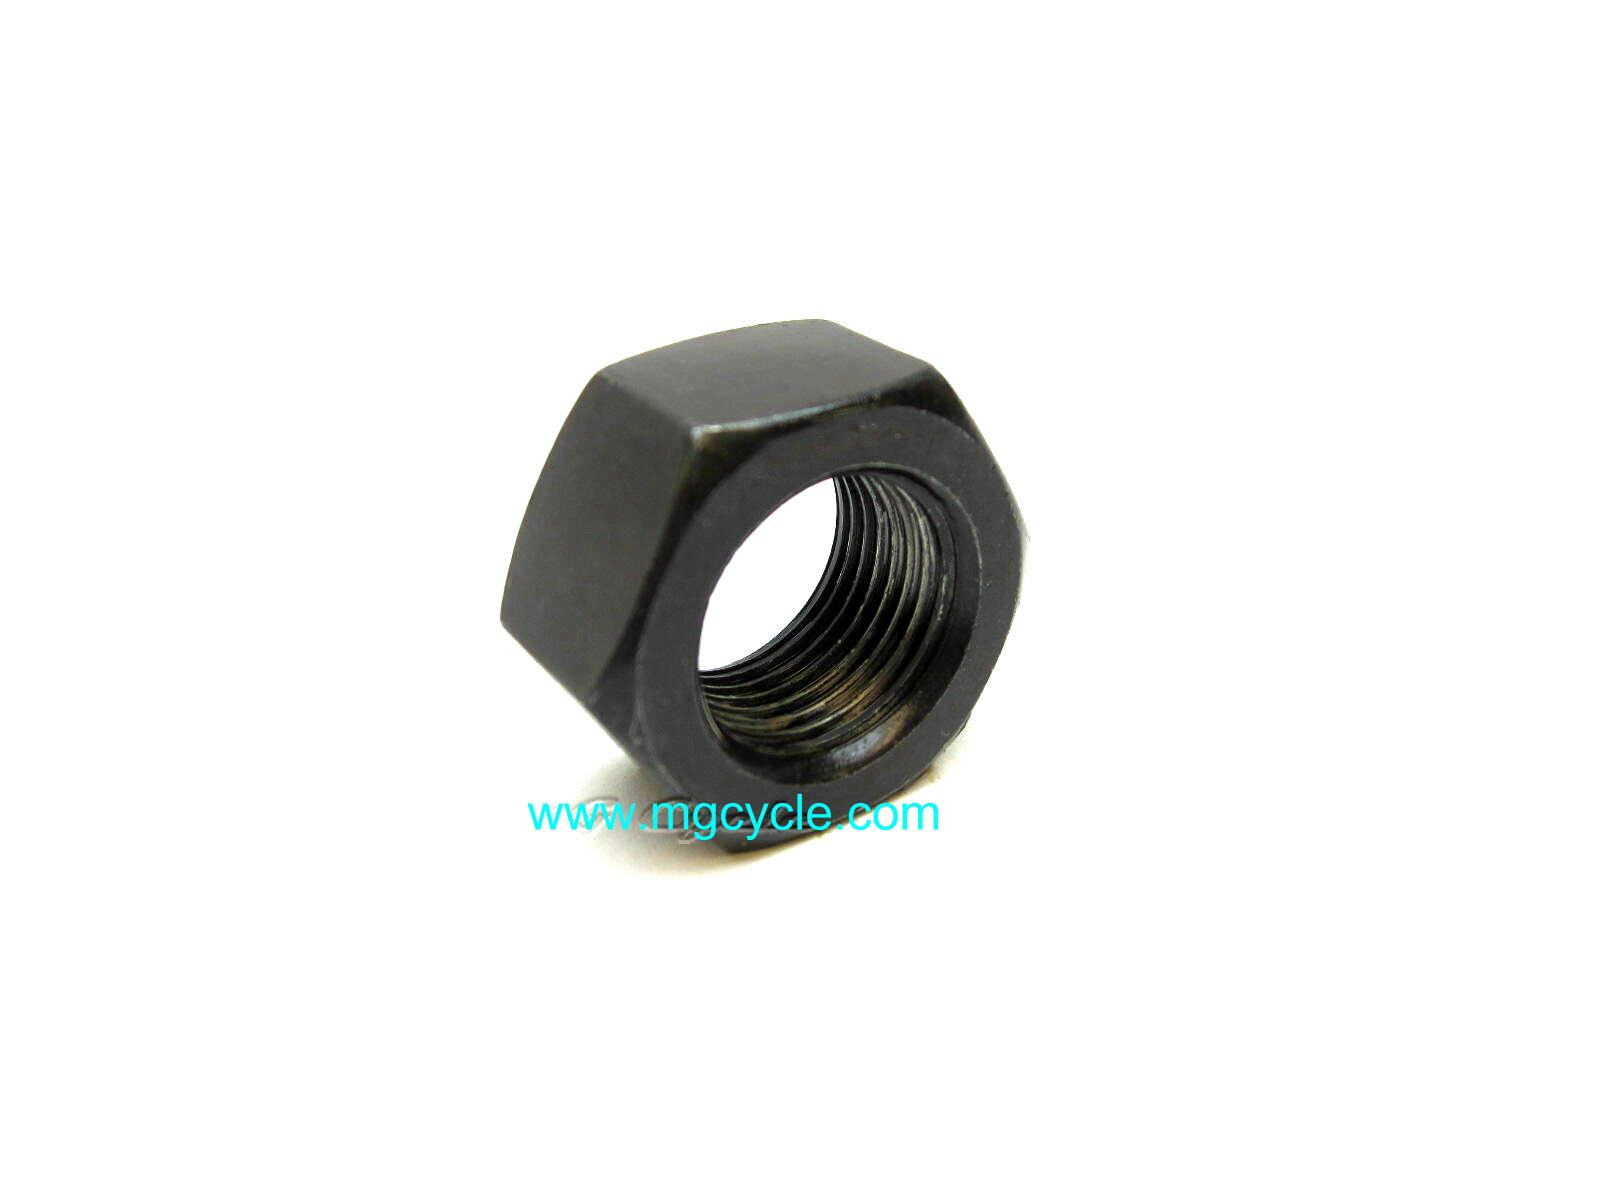 Camshaft securing nut, big twins GU92602518